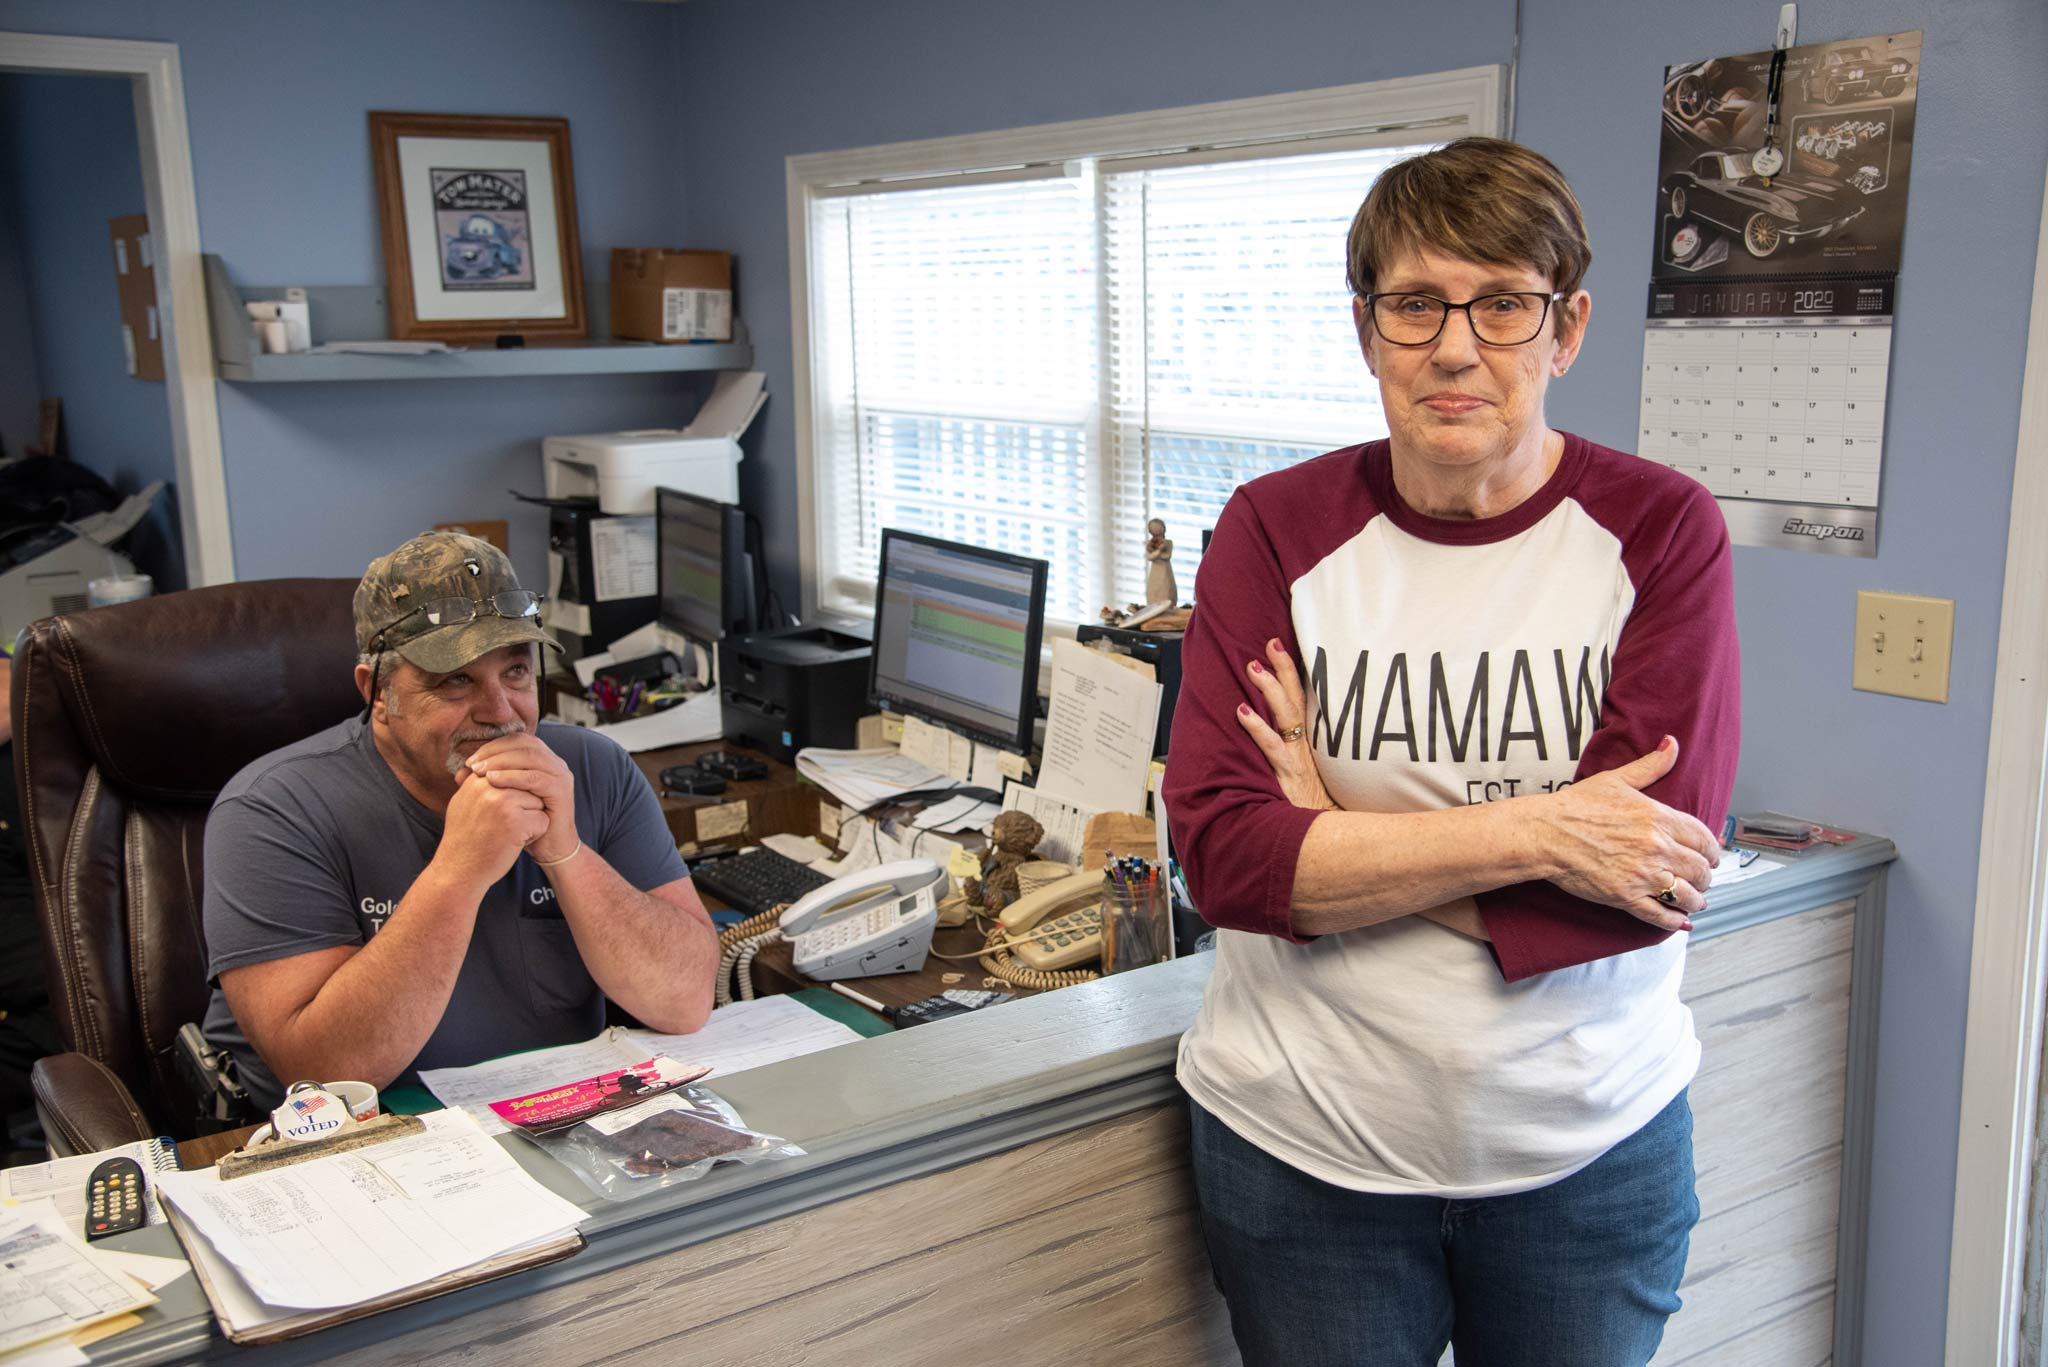 Debbie leans against the Gold City Towing office reception desk while Chuck sits in the chair behind her and smiles.